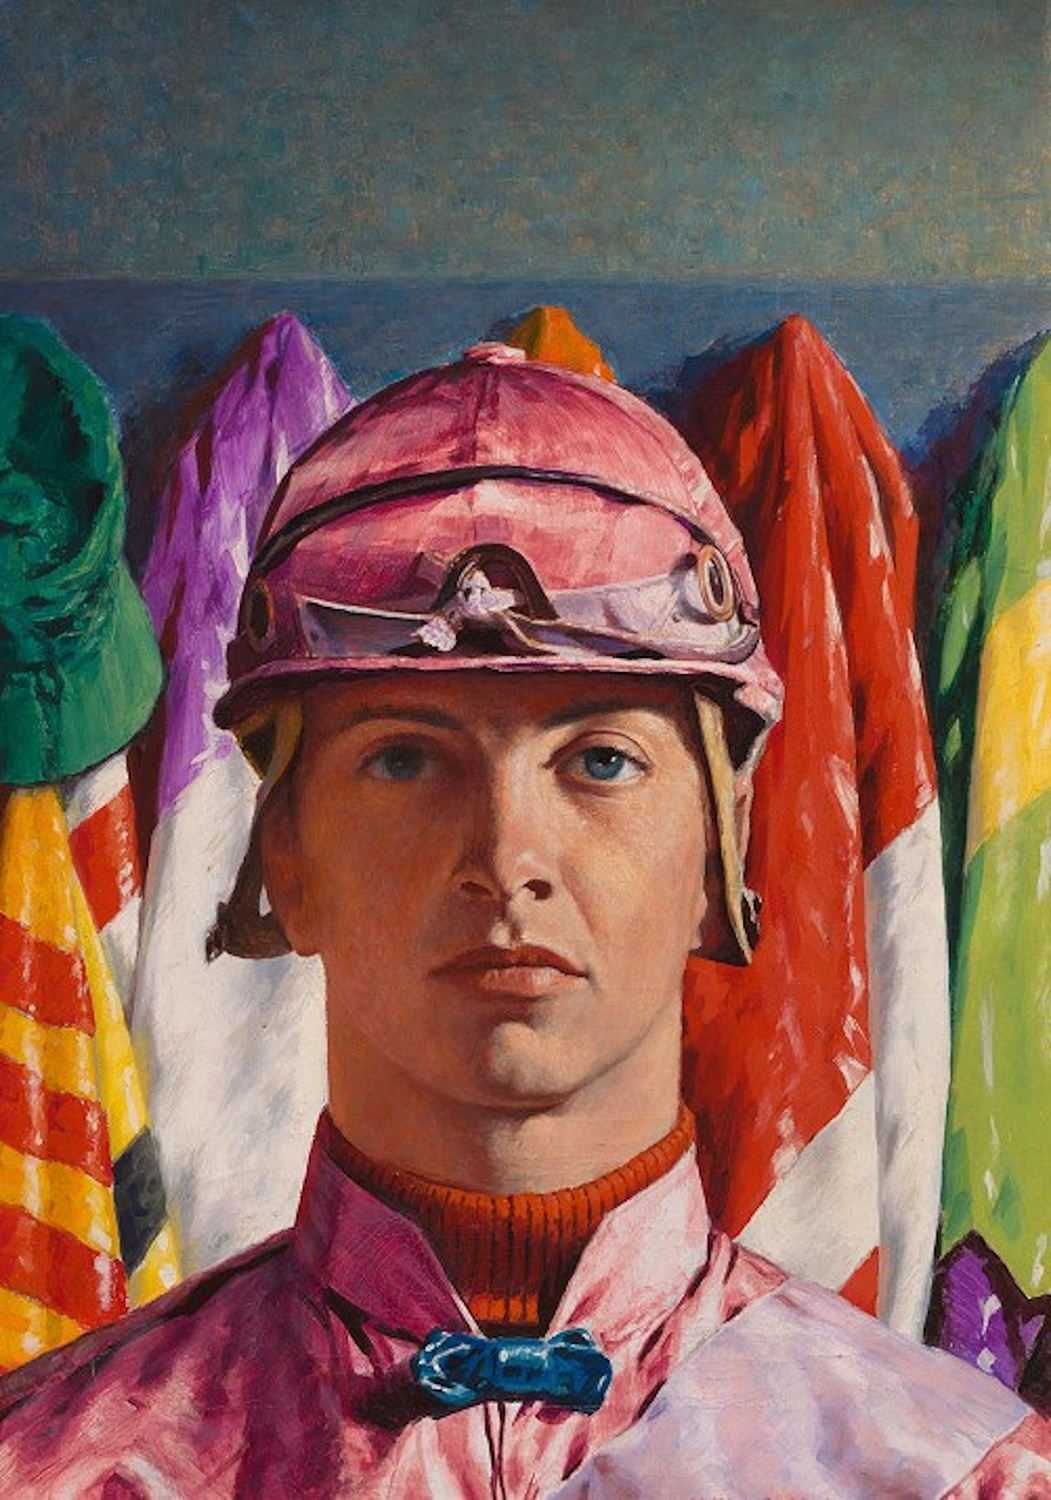 William Hartack, by James Ormsbee Chapin, oil on canvas, 1958. Courtesy of the National Portrait Gallery, Smithsonian Institution. Gift of TIME magazine, © James Cox Gallery at Woodstock for the James Chapin Estate.